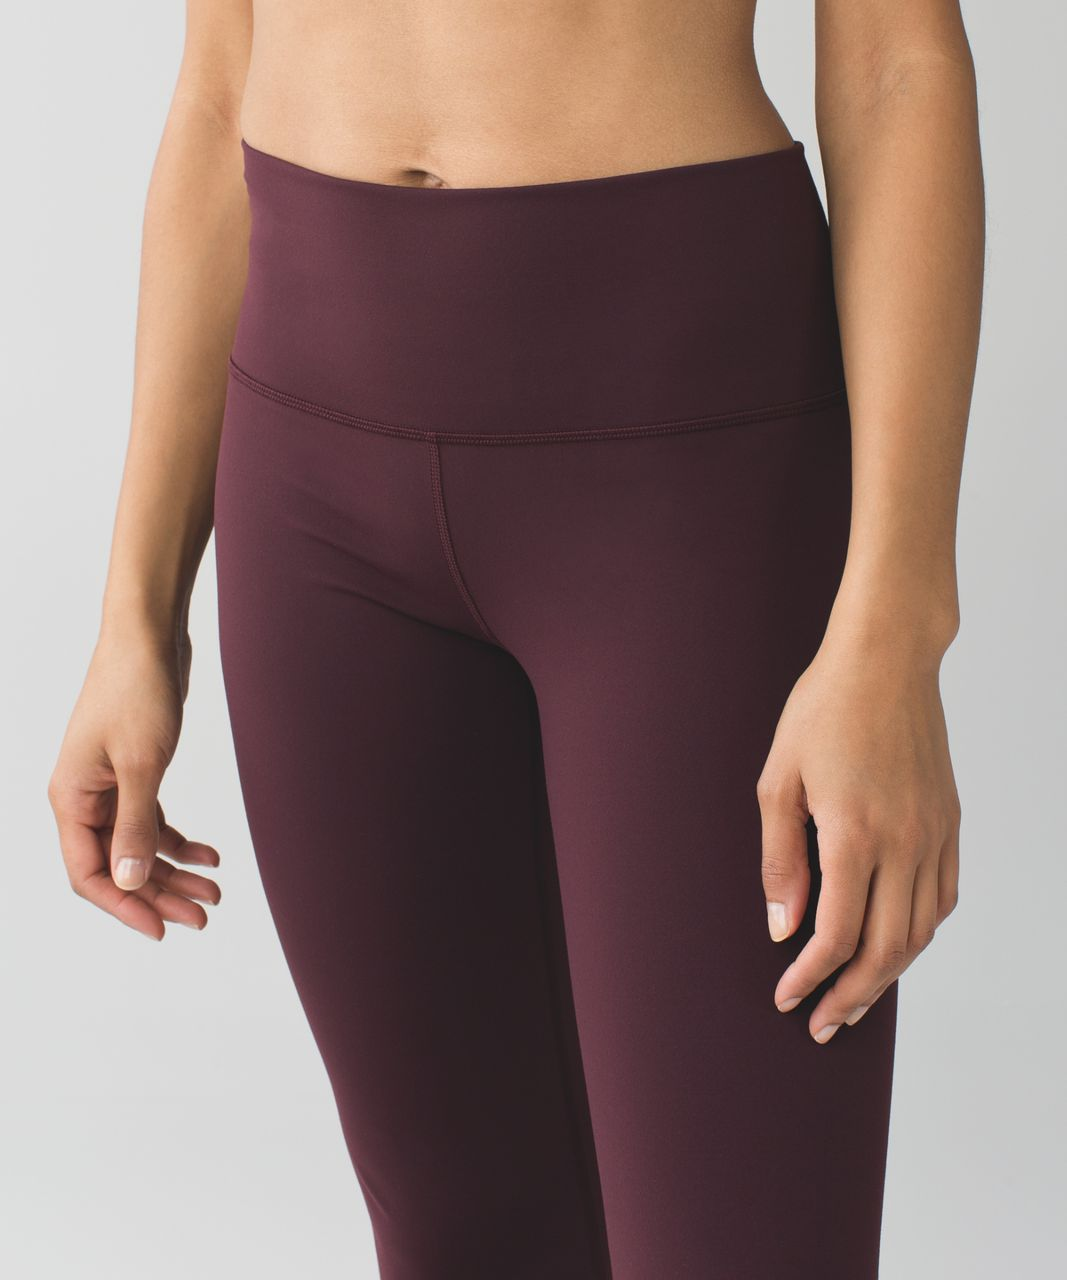 Lululemon Groove Pant III (Regular) - Bordeaux Drama